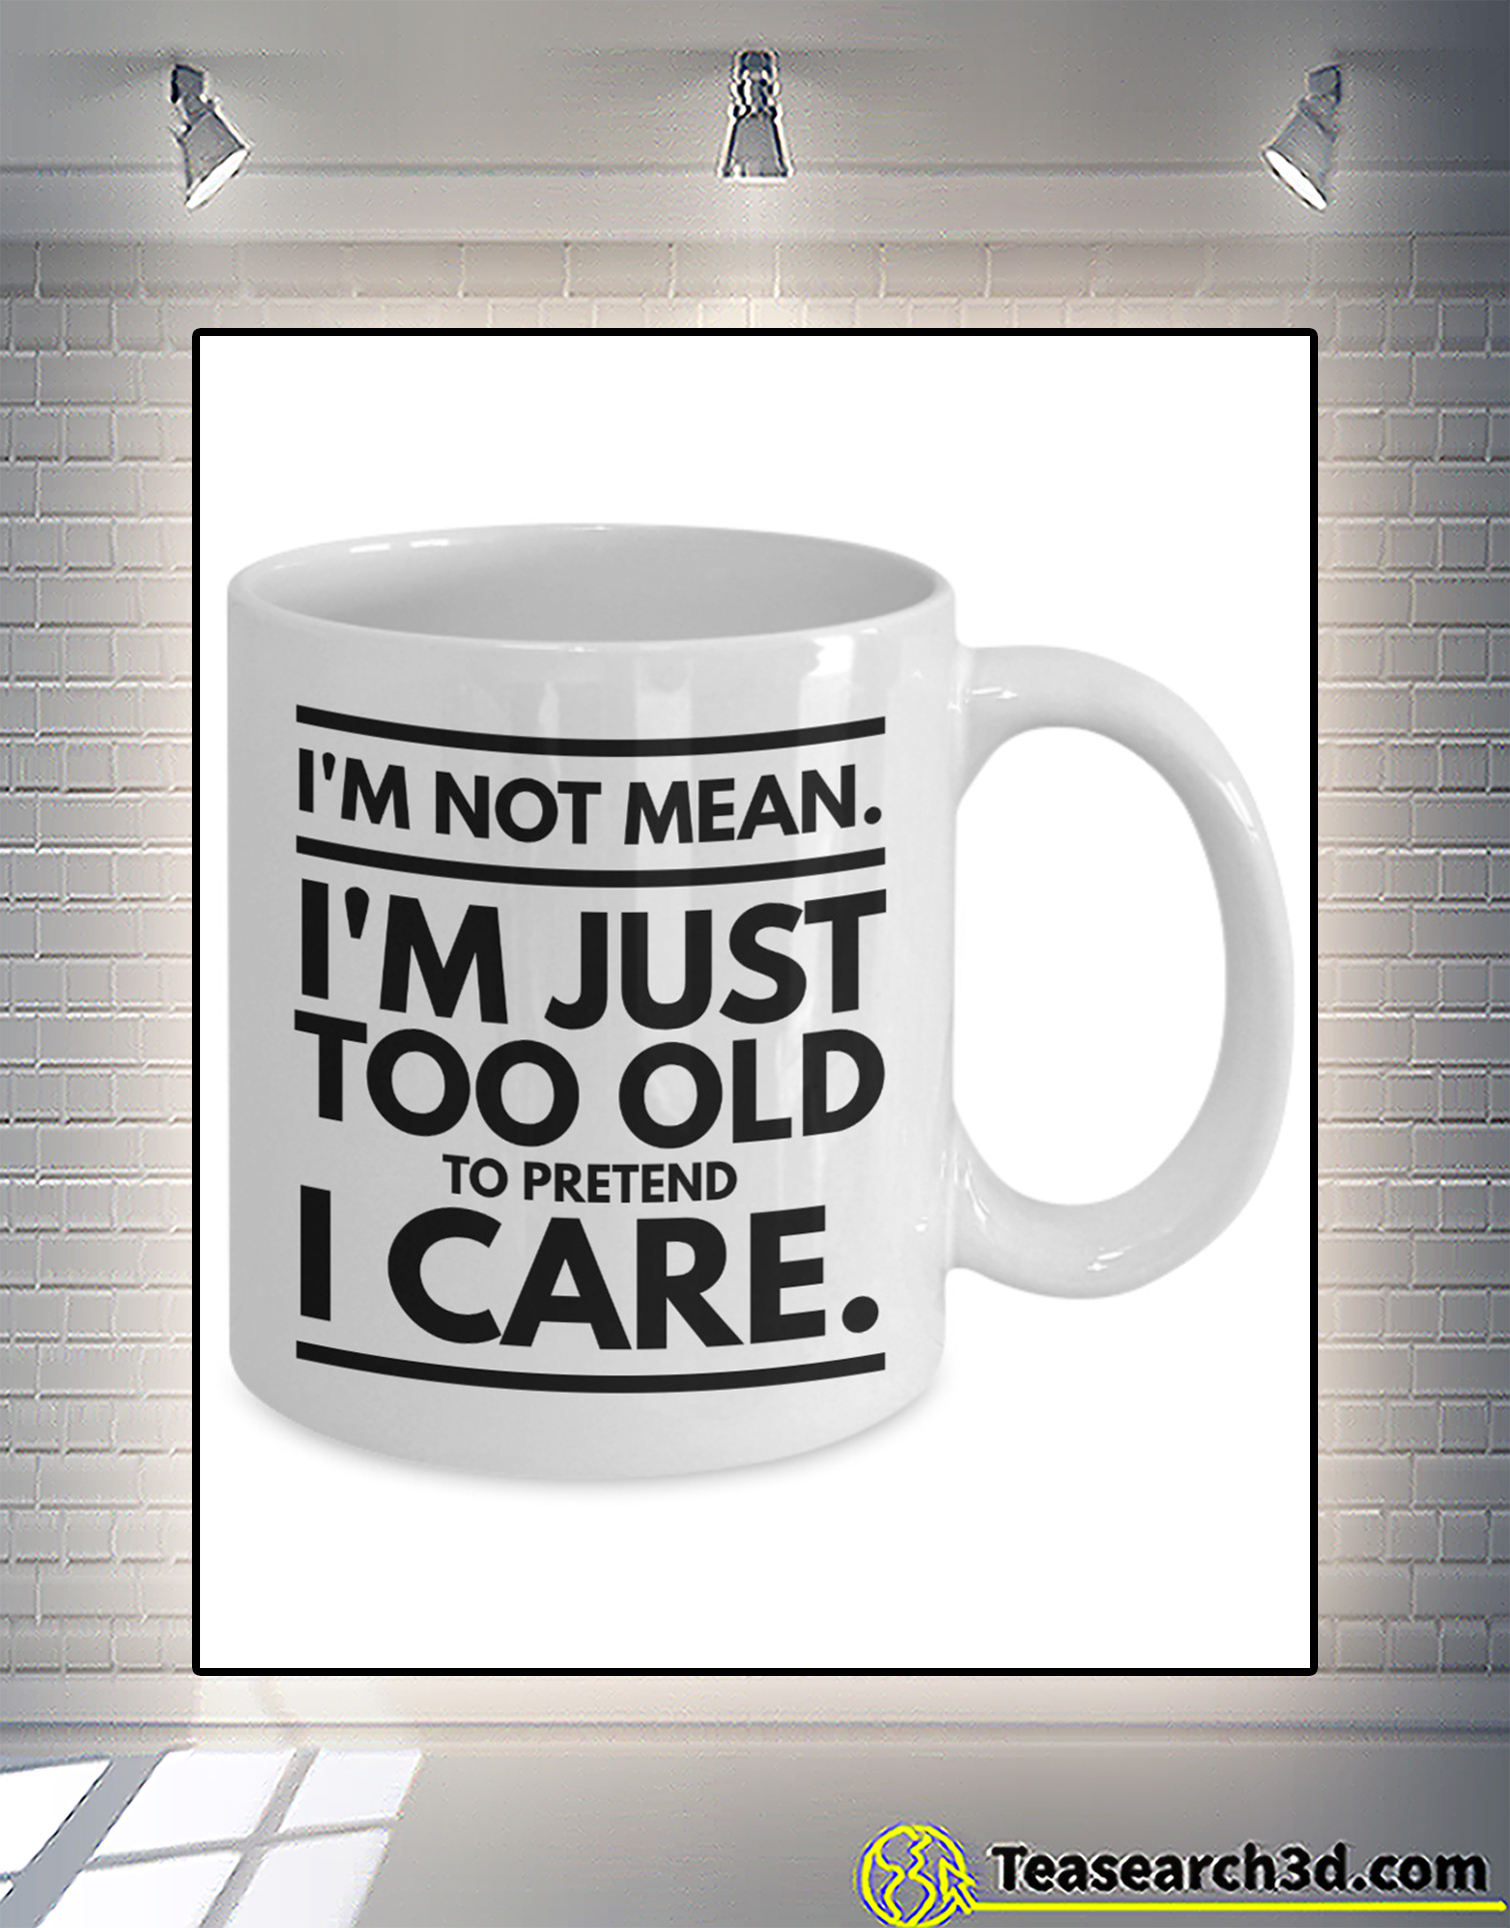 I'm not mean I'm just too old to pretend I care mug